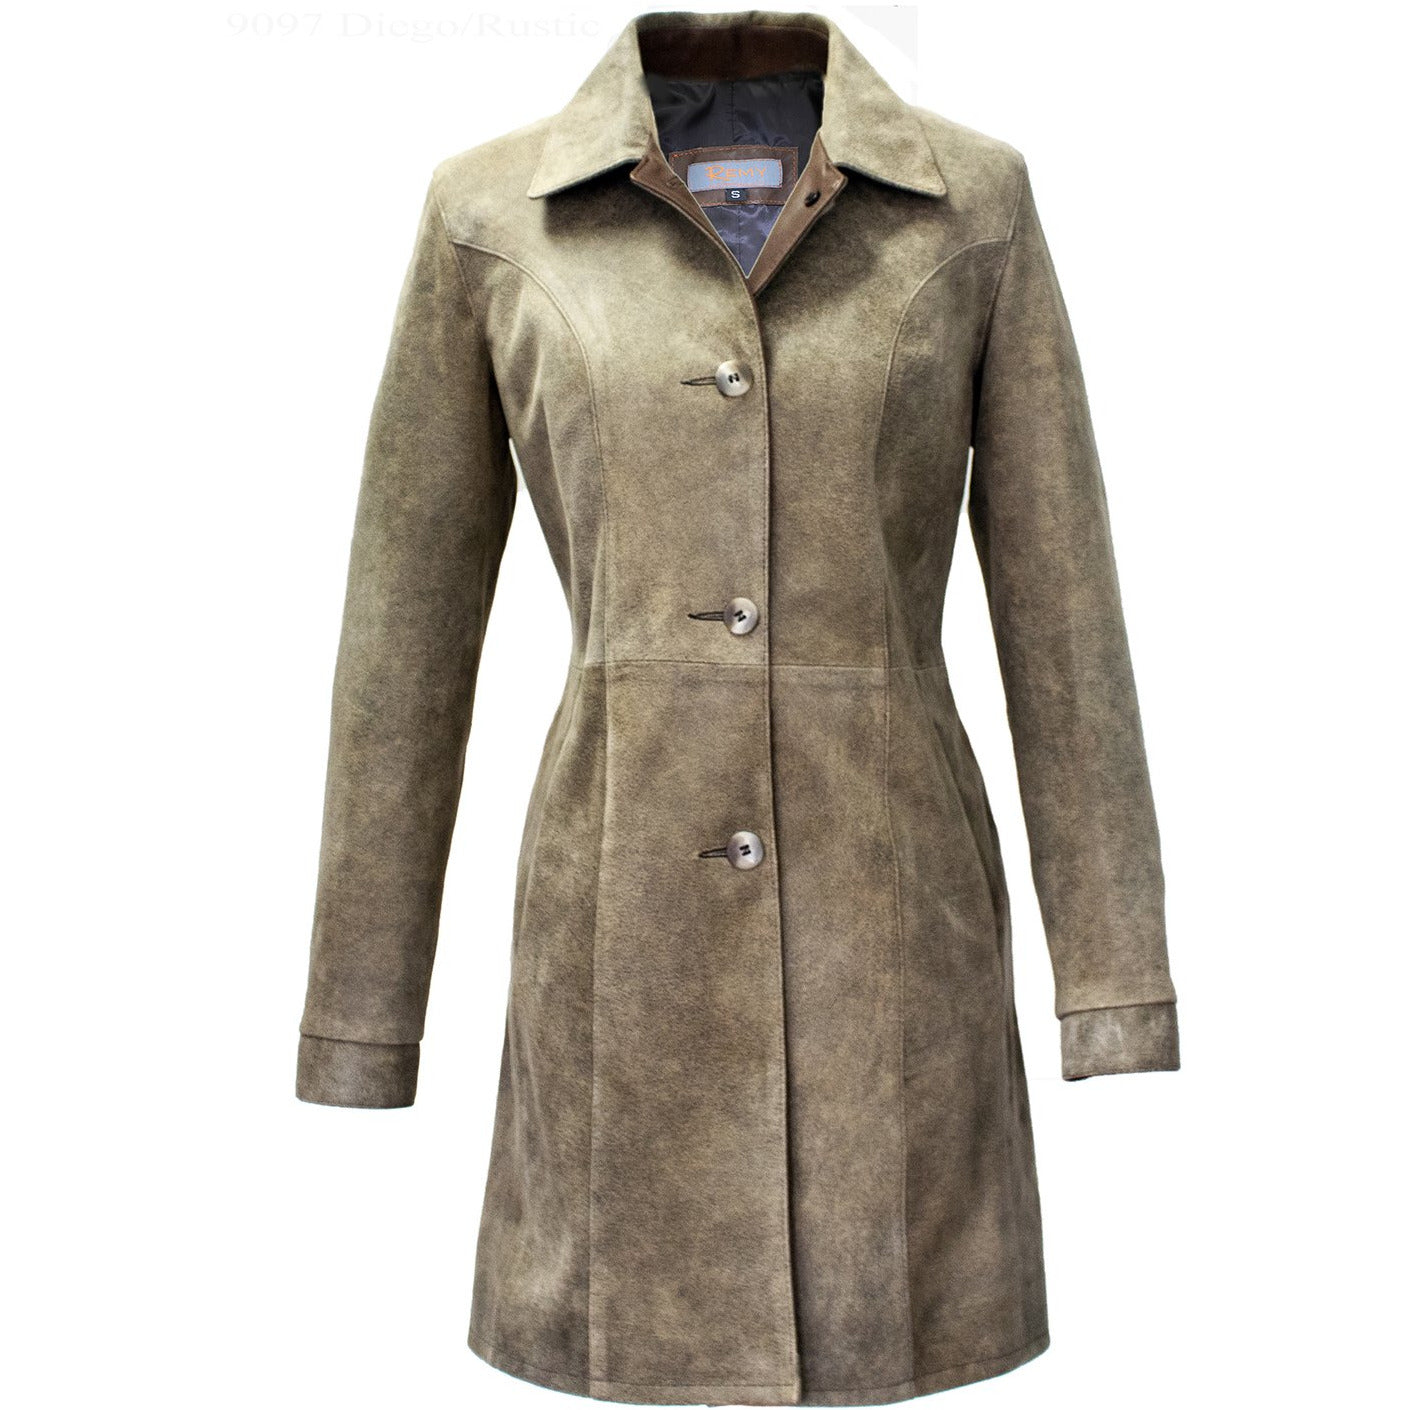 9097 - Ladies Leather Button Coat in Diego/Rustic